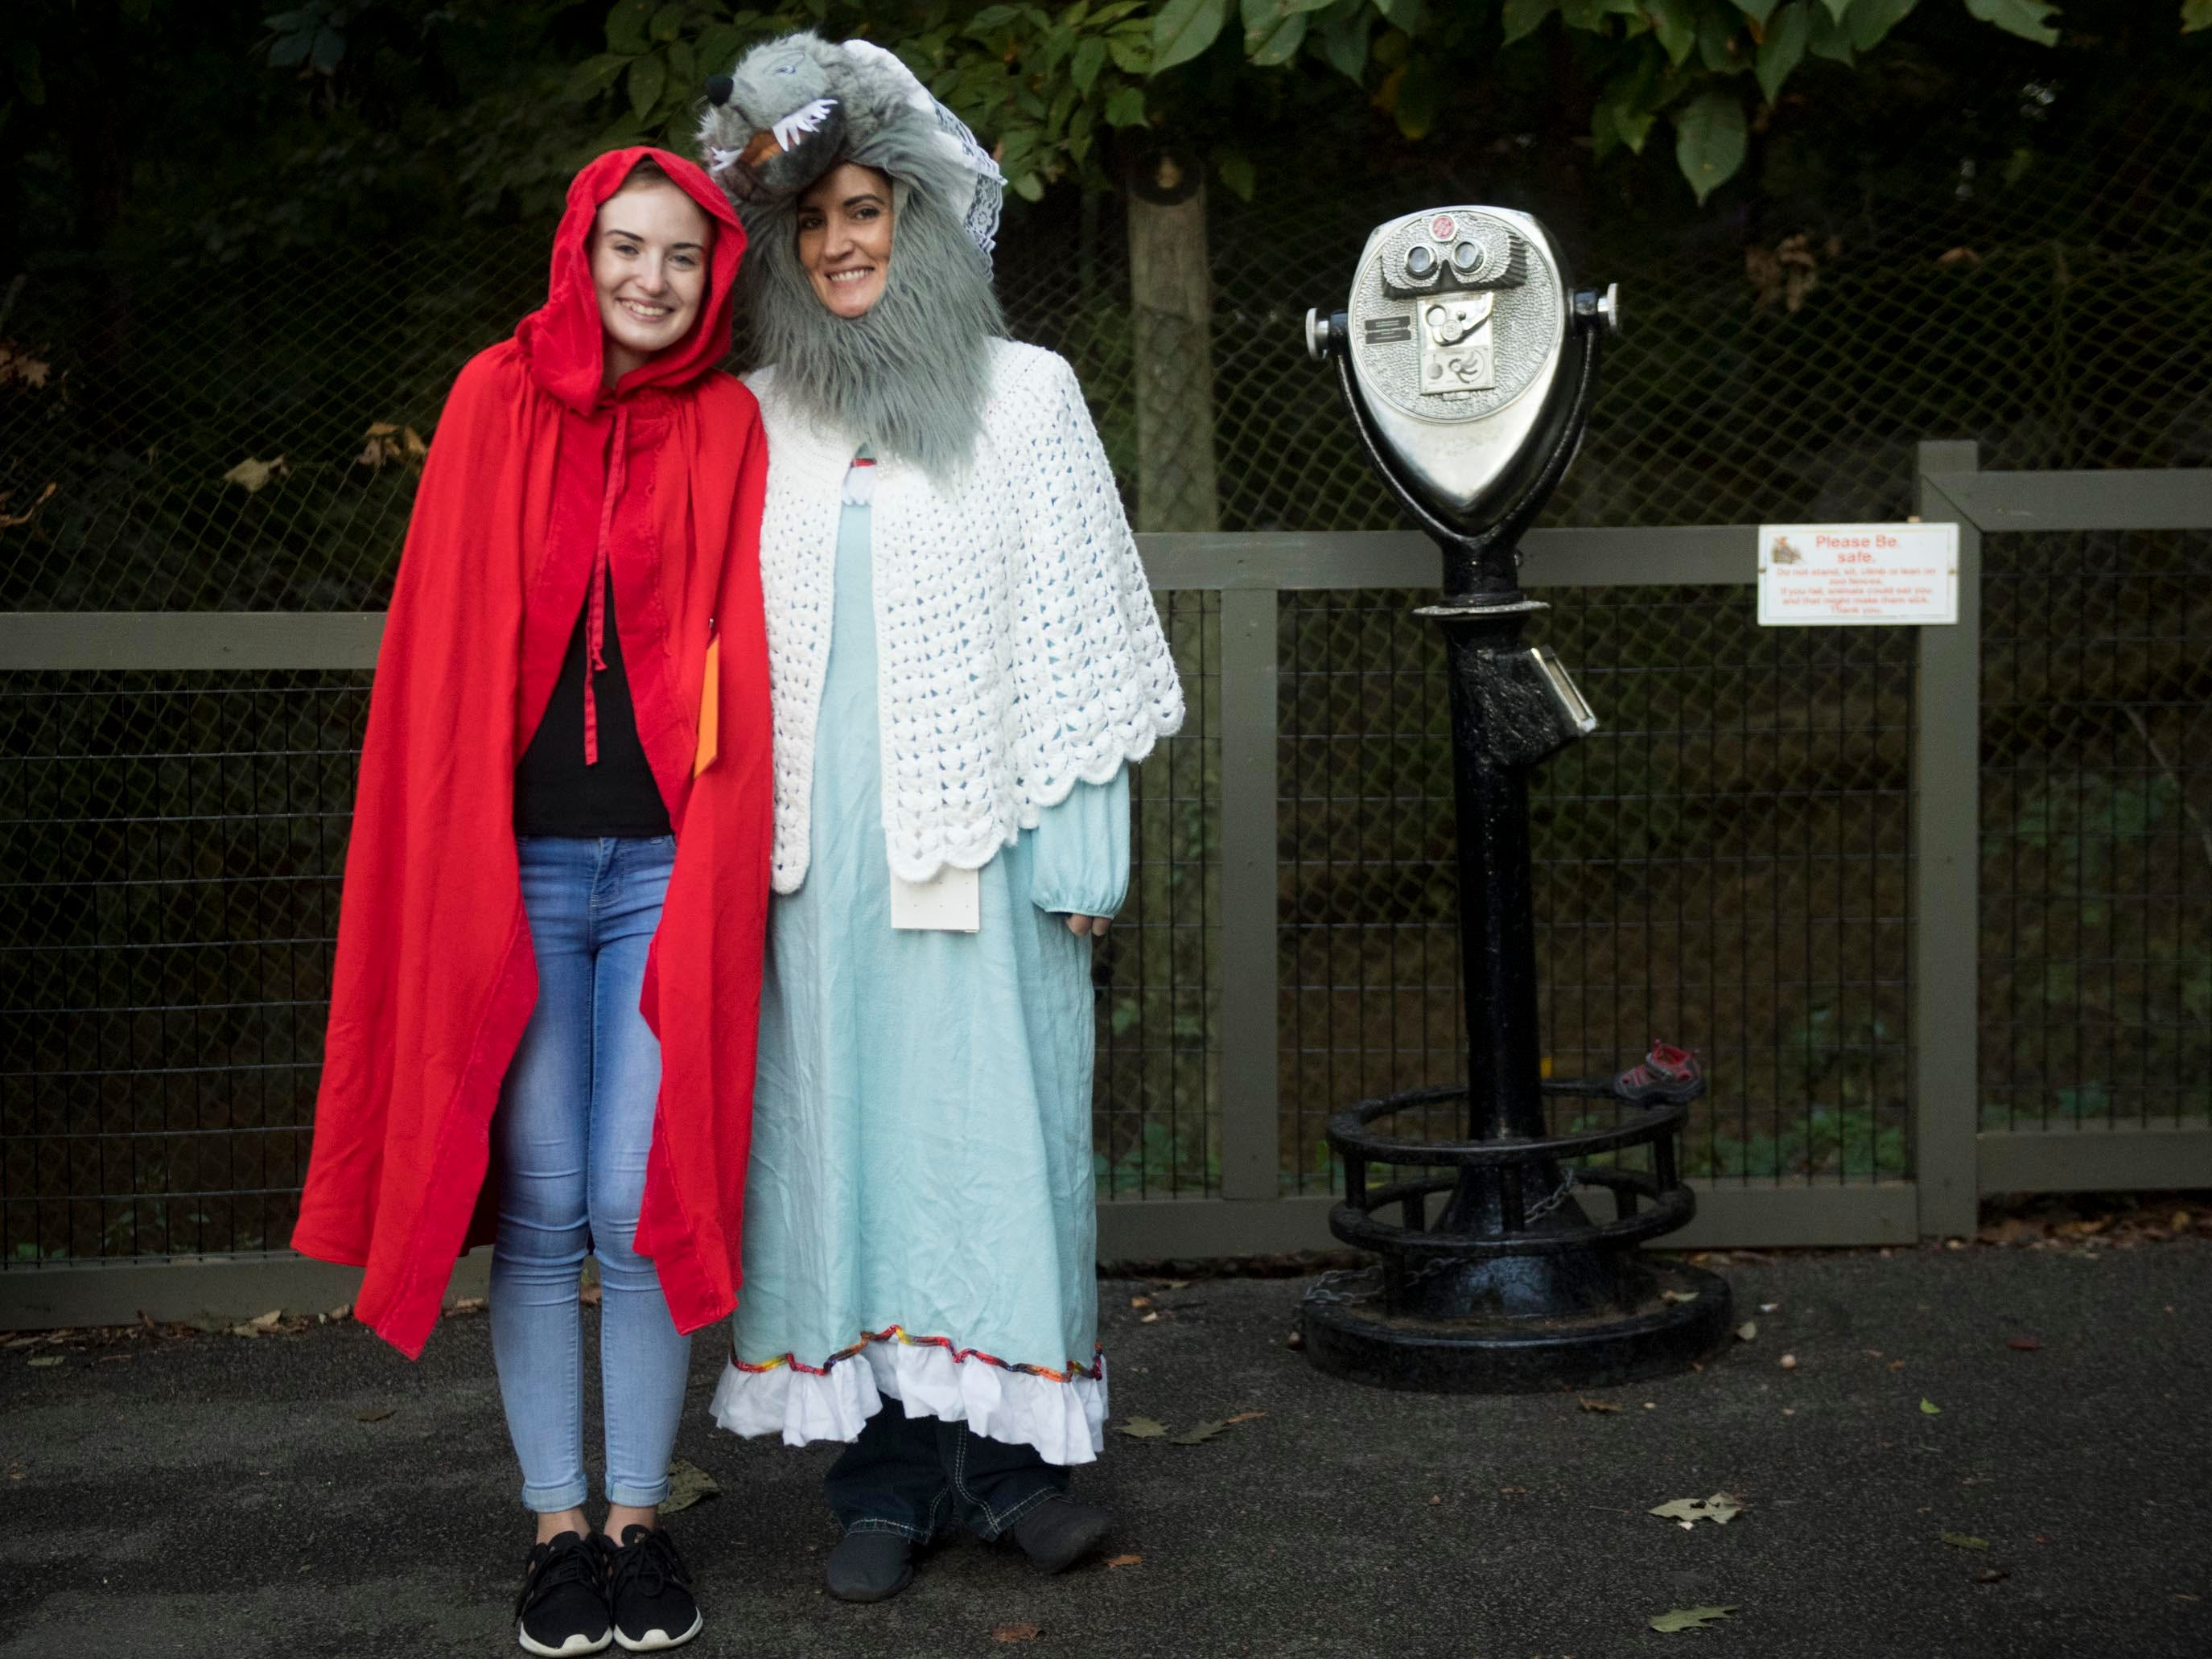 Volunteers Jamie Hodge and Shae Johnson during Zoo Knoxville's Boo! at the Zoo on Saturday, October 20, 2018.